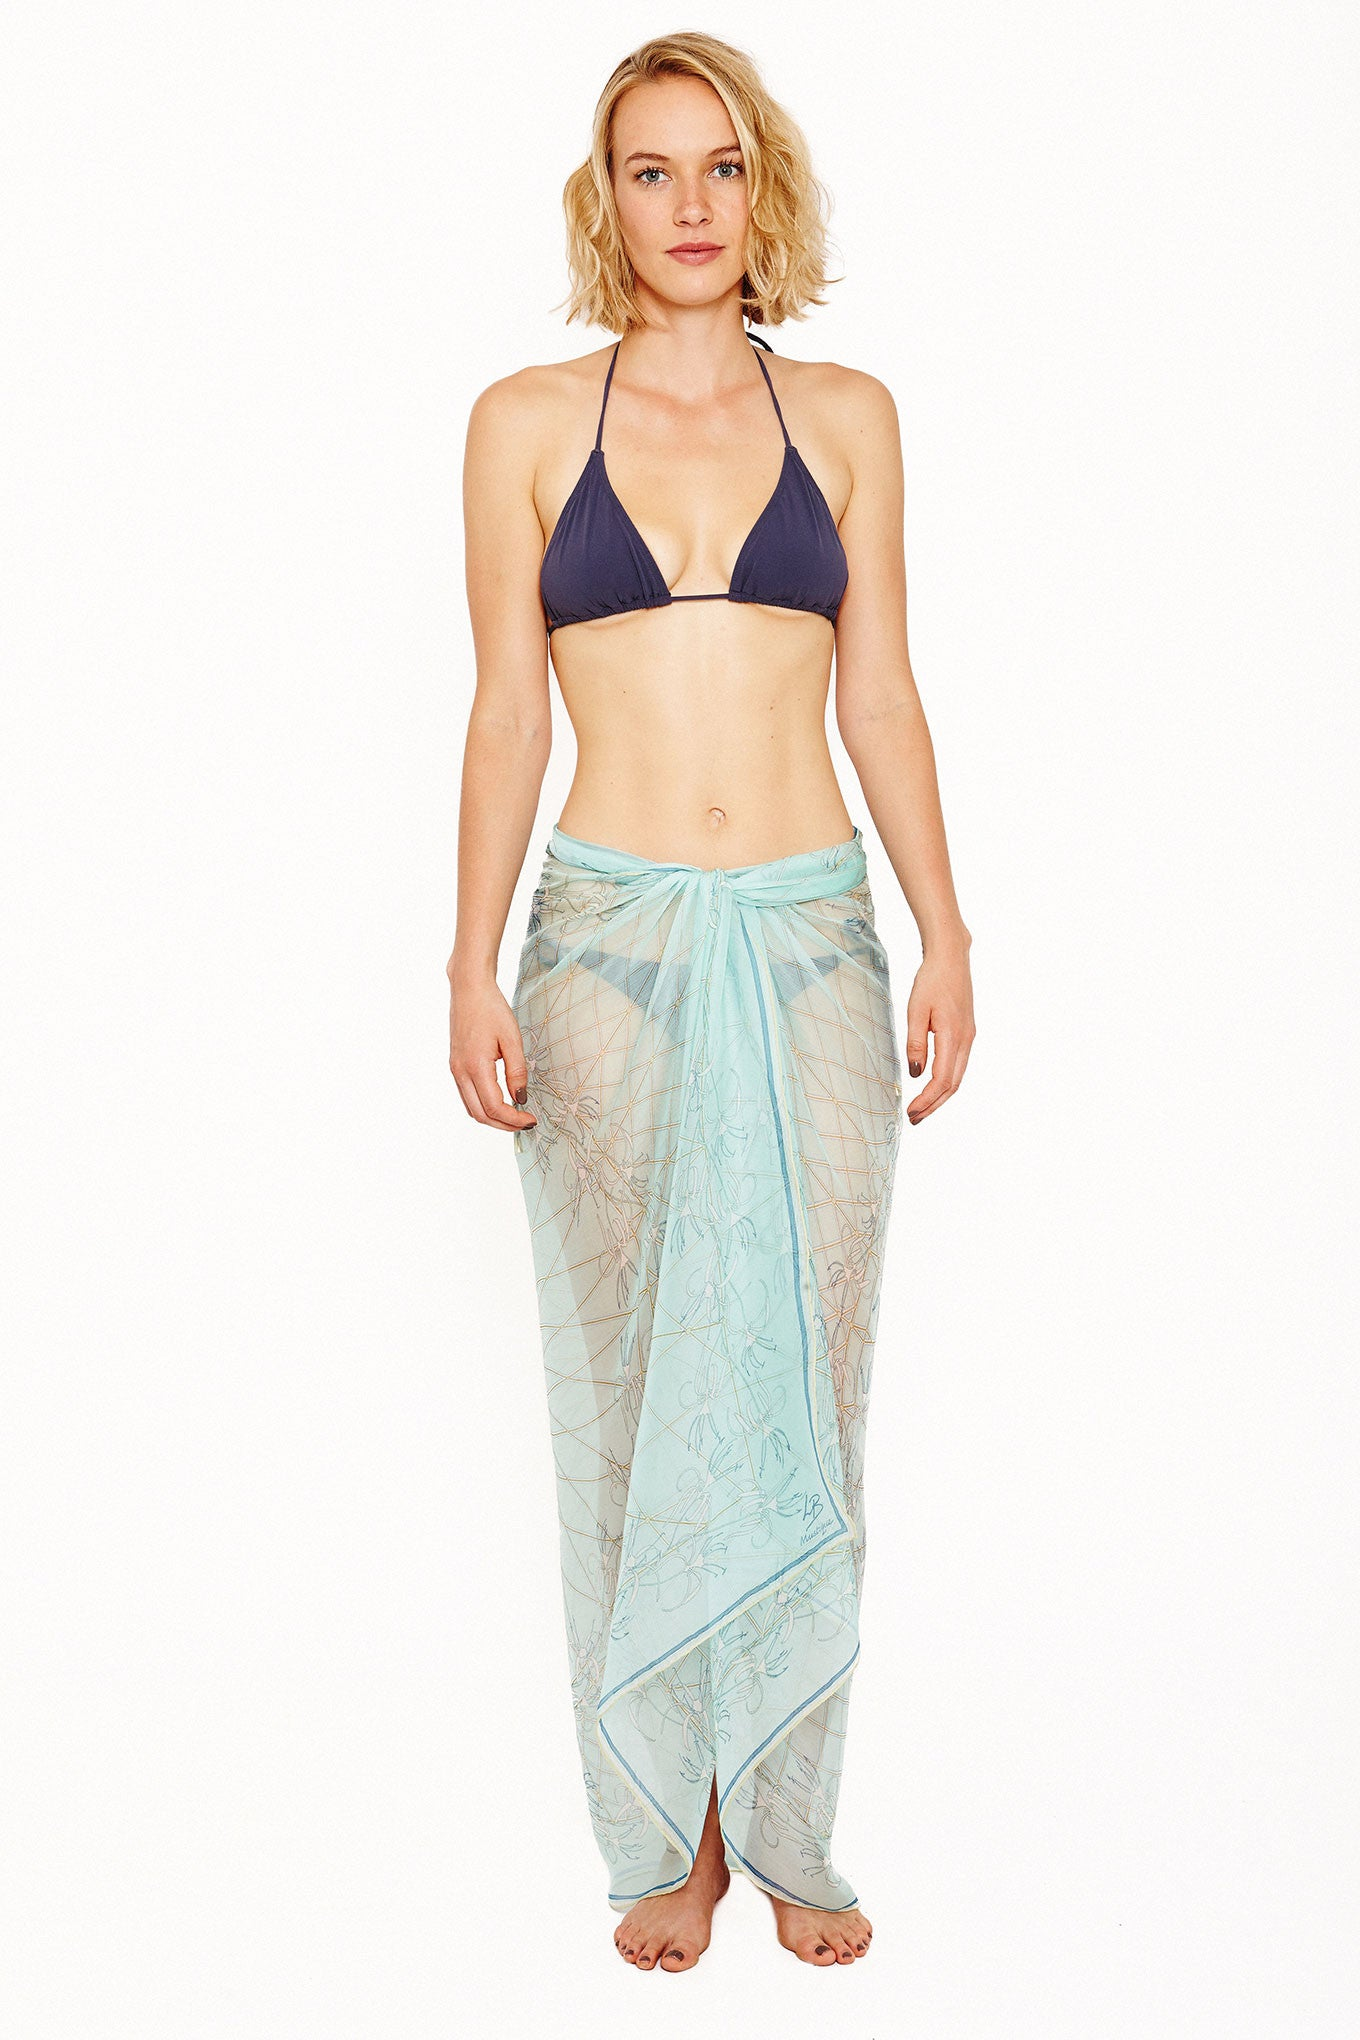 Lotty B Sarong in Silk Chiffon (Spiderlily Pale Blue) Tied at Hips